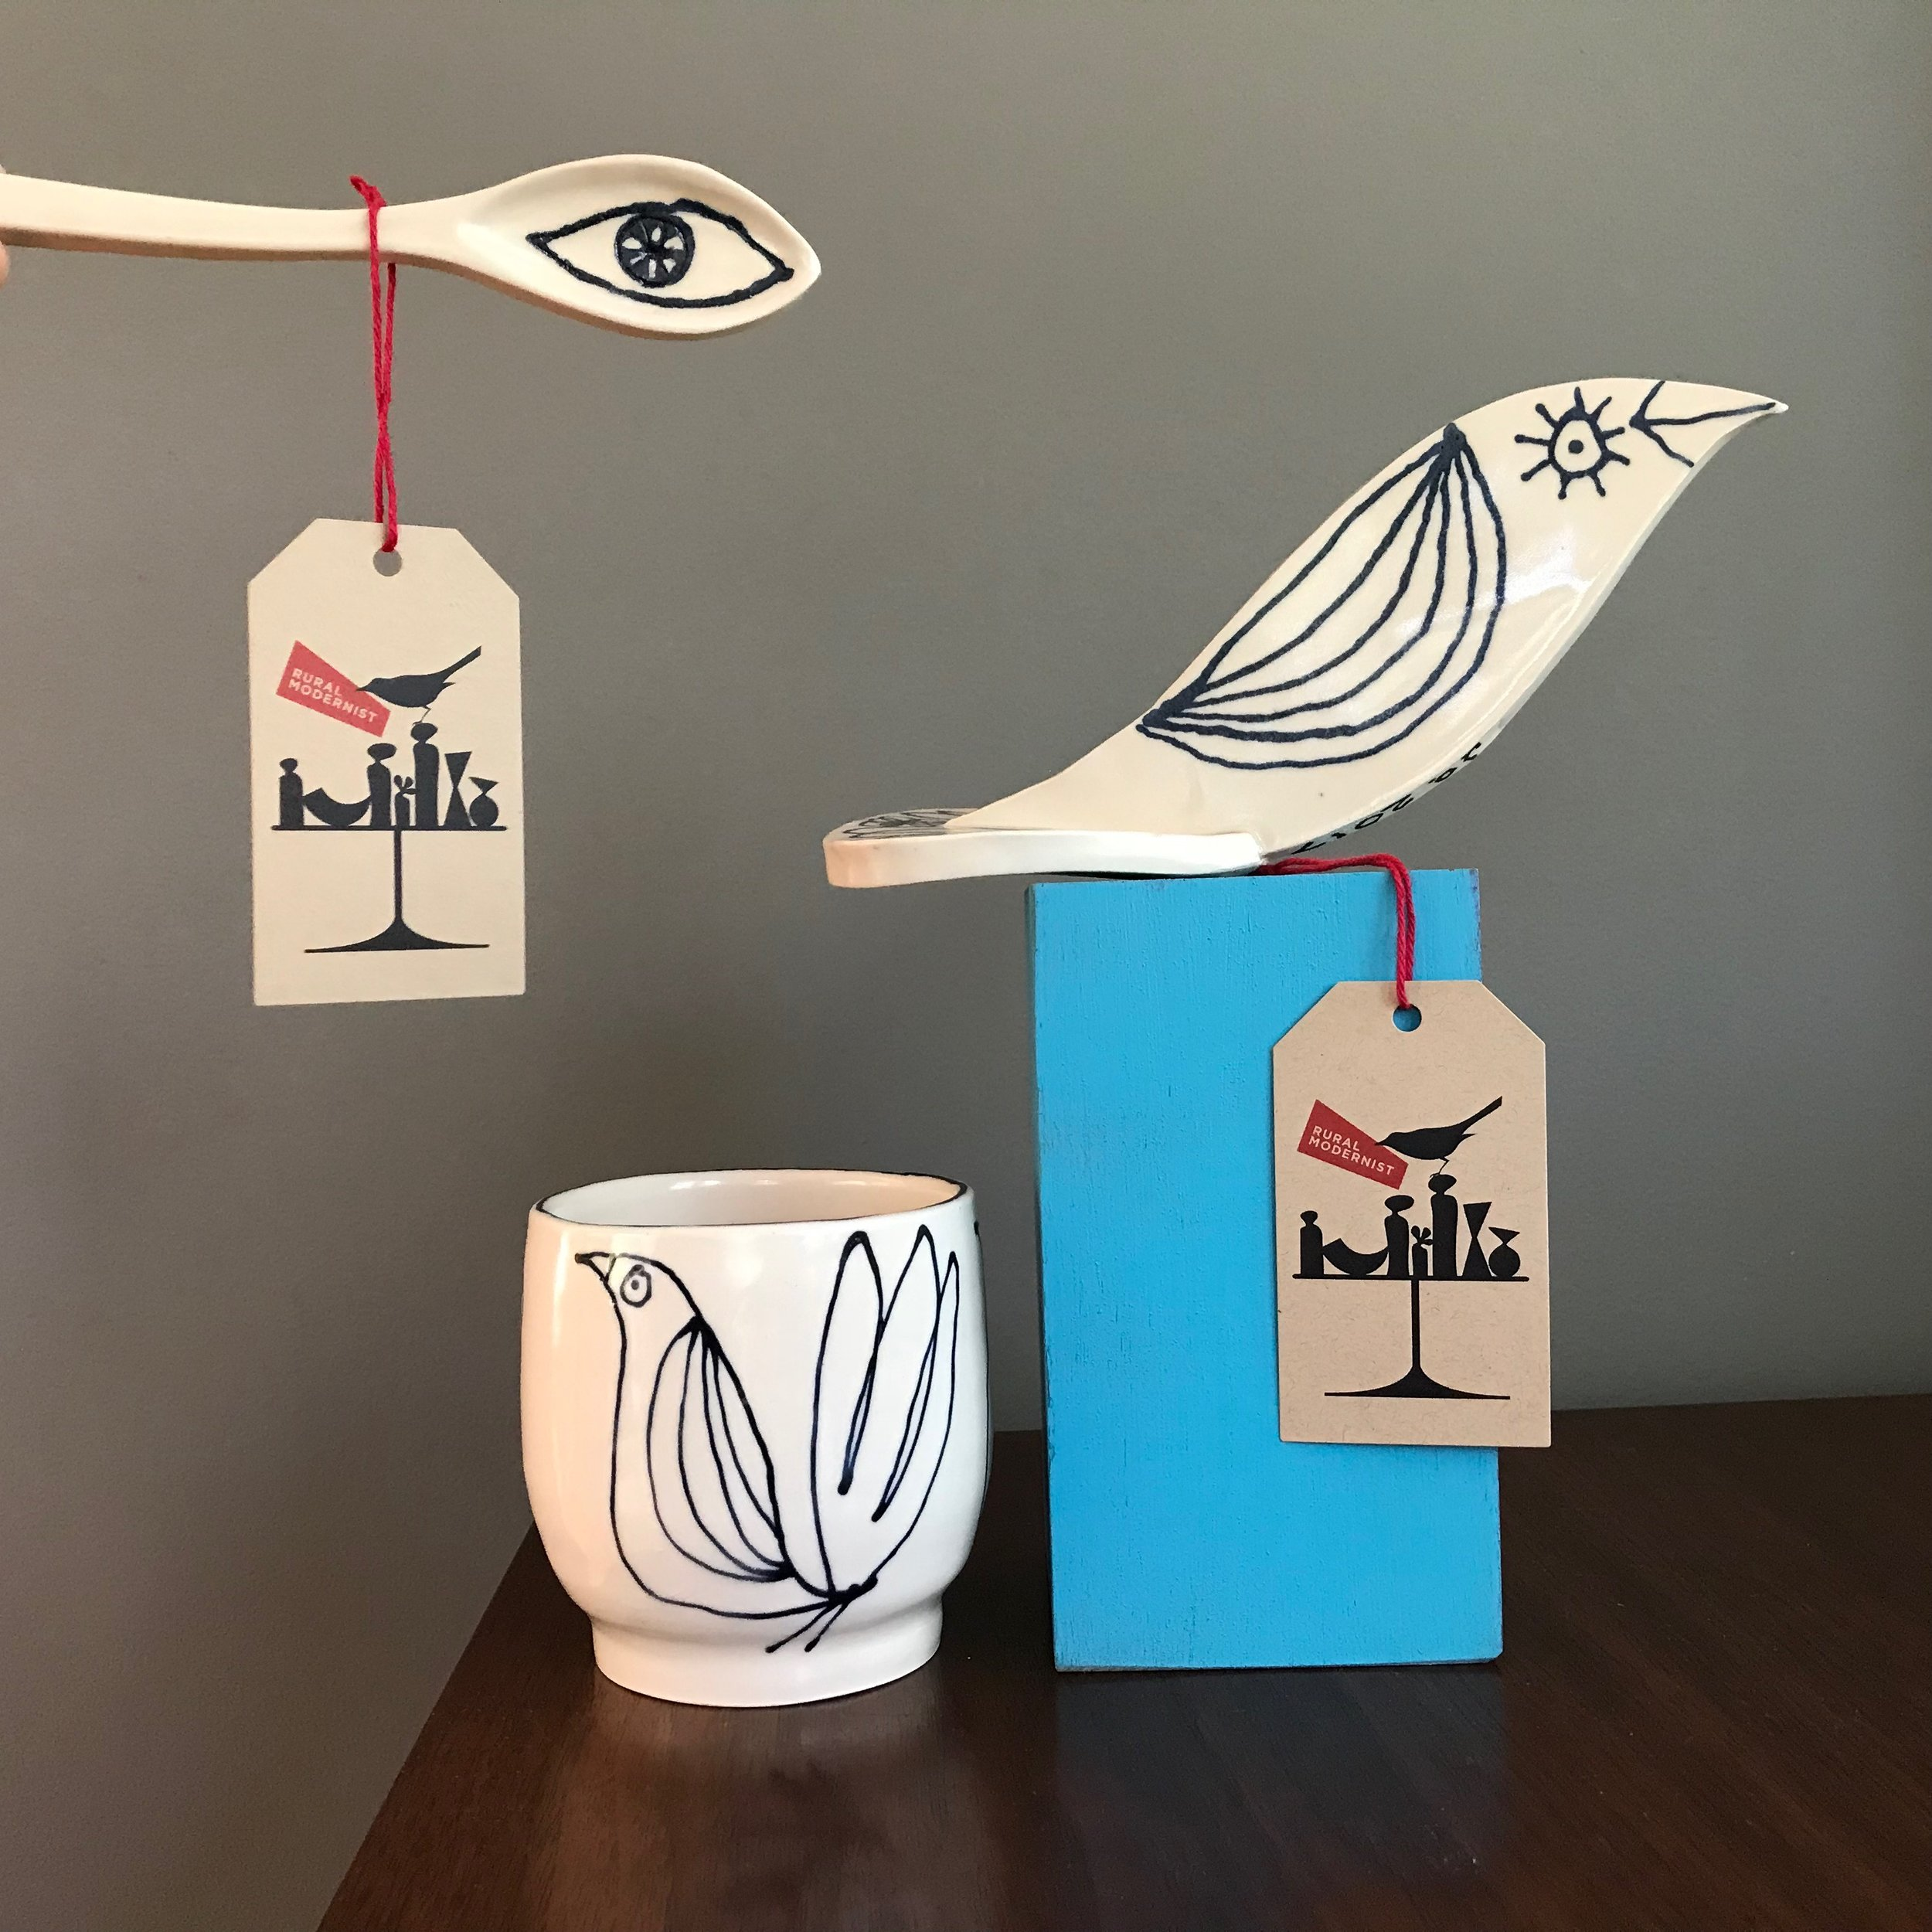 blotted line - Birds, eyes, and stripes loosely doodled on handmade ceramics.